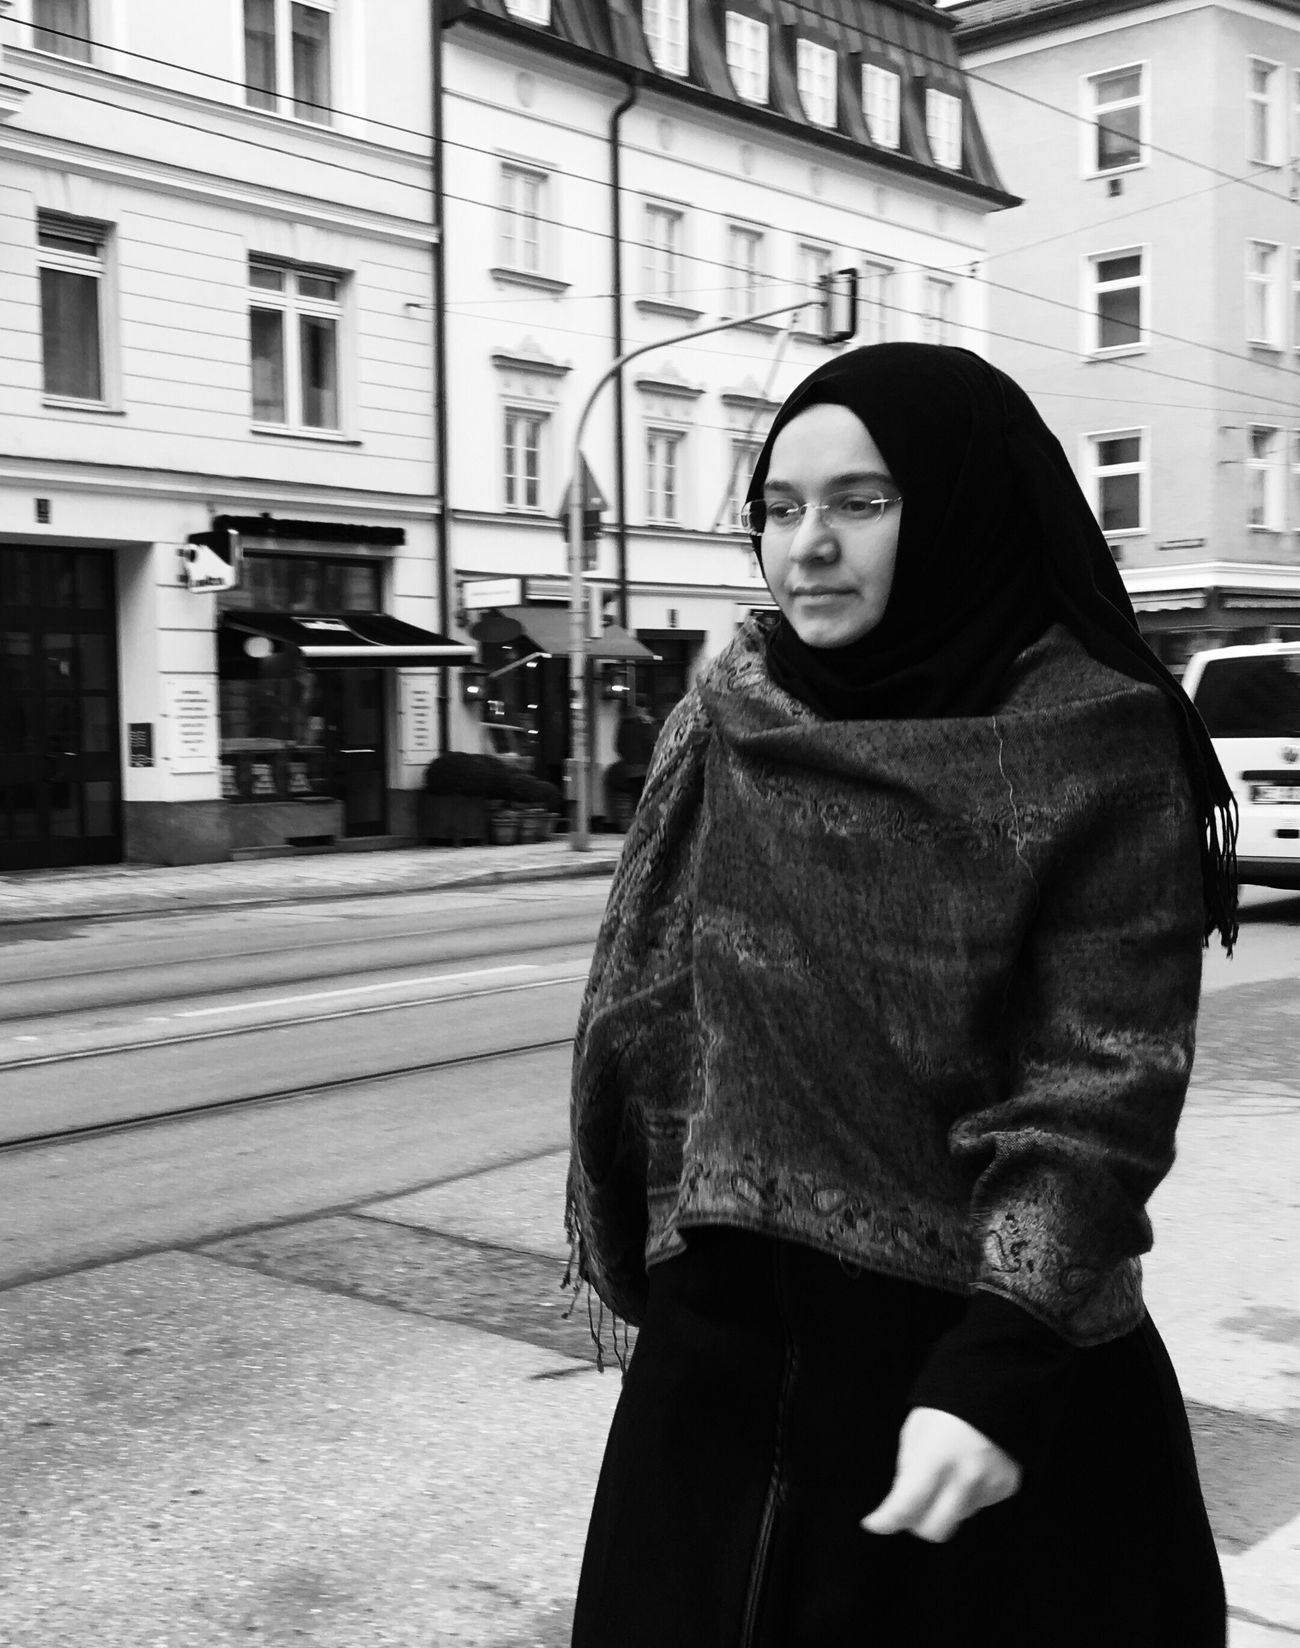 Three Quarter Length Building Exterior Real People One Person Built Structure Lifestyles Black And White Street Focus On Foreground Leisure Activity Young Adult Warm Clothing Young Women Outdoors Front View City Day Overcoat Beautiful Woman Standing